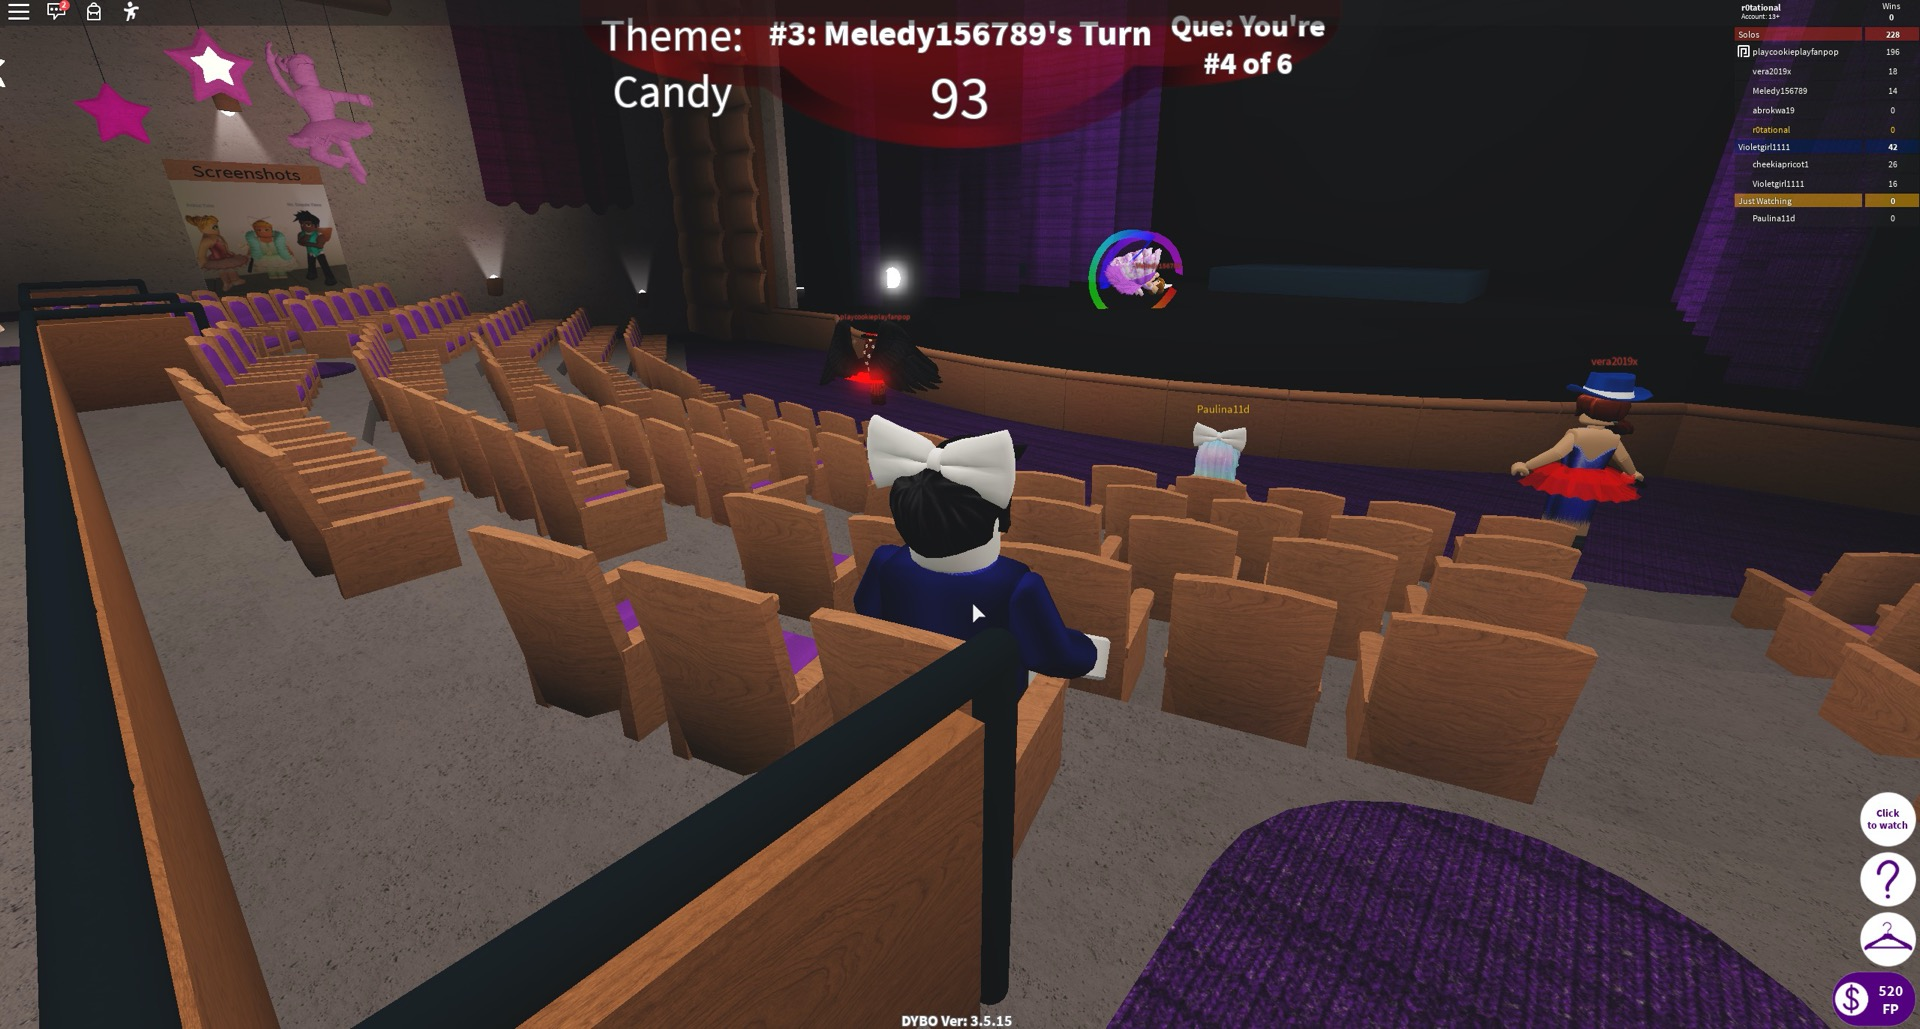 High School Dorm Life Roblox Get 1 Robux Portraits Of Roblox S Leading Makers The Roleplayers Gaming News Boom